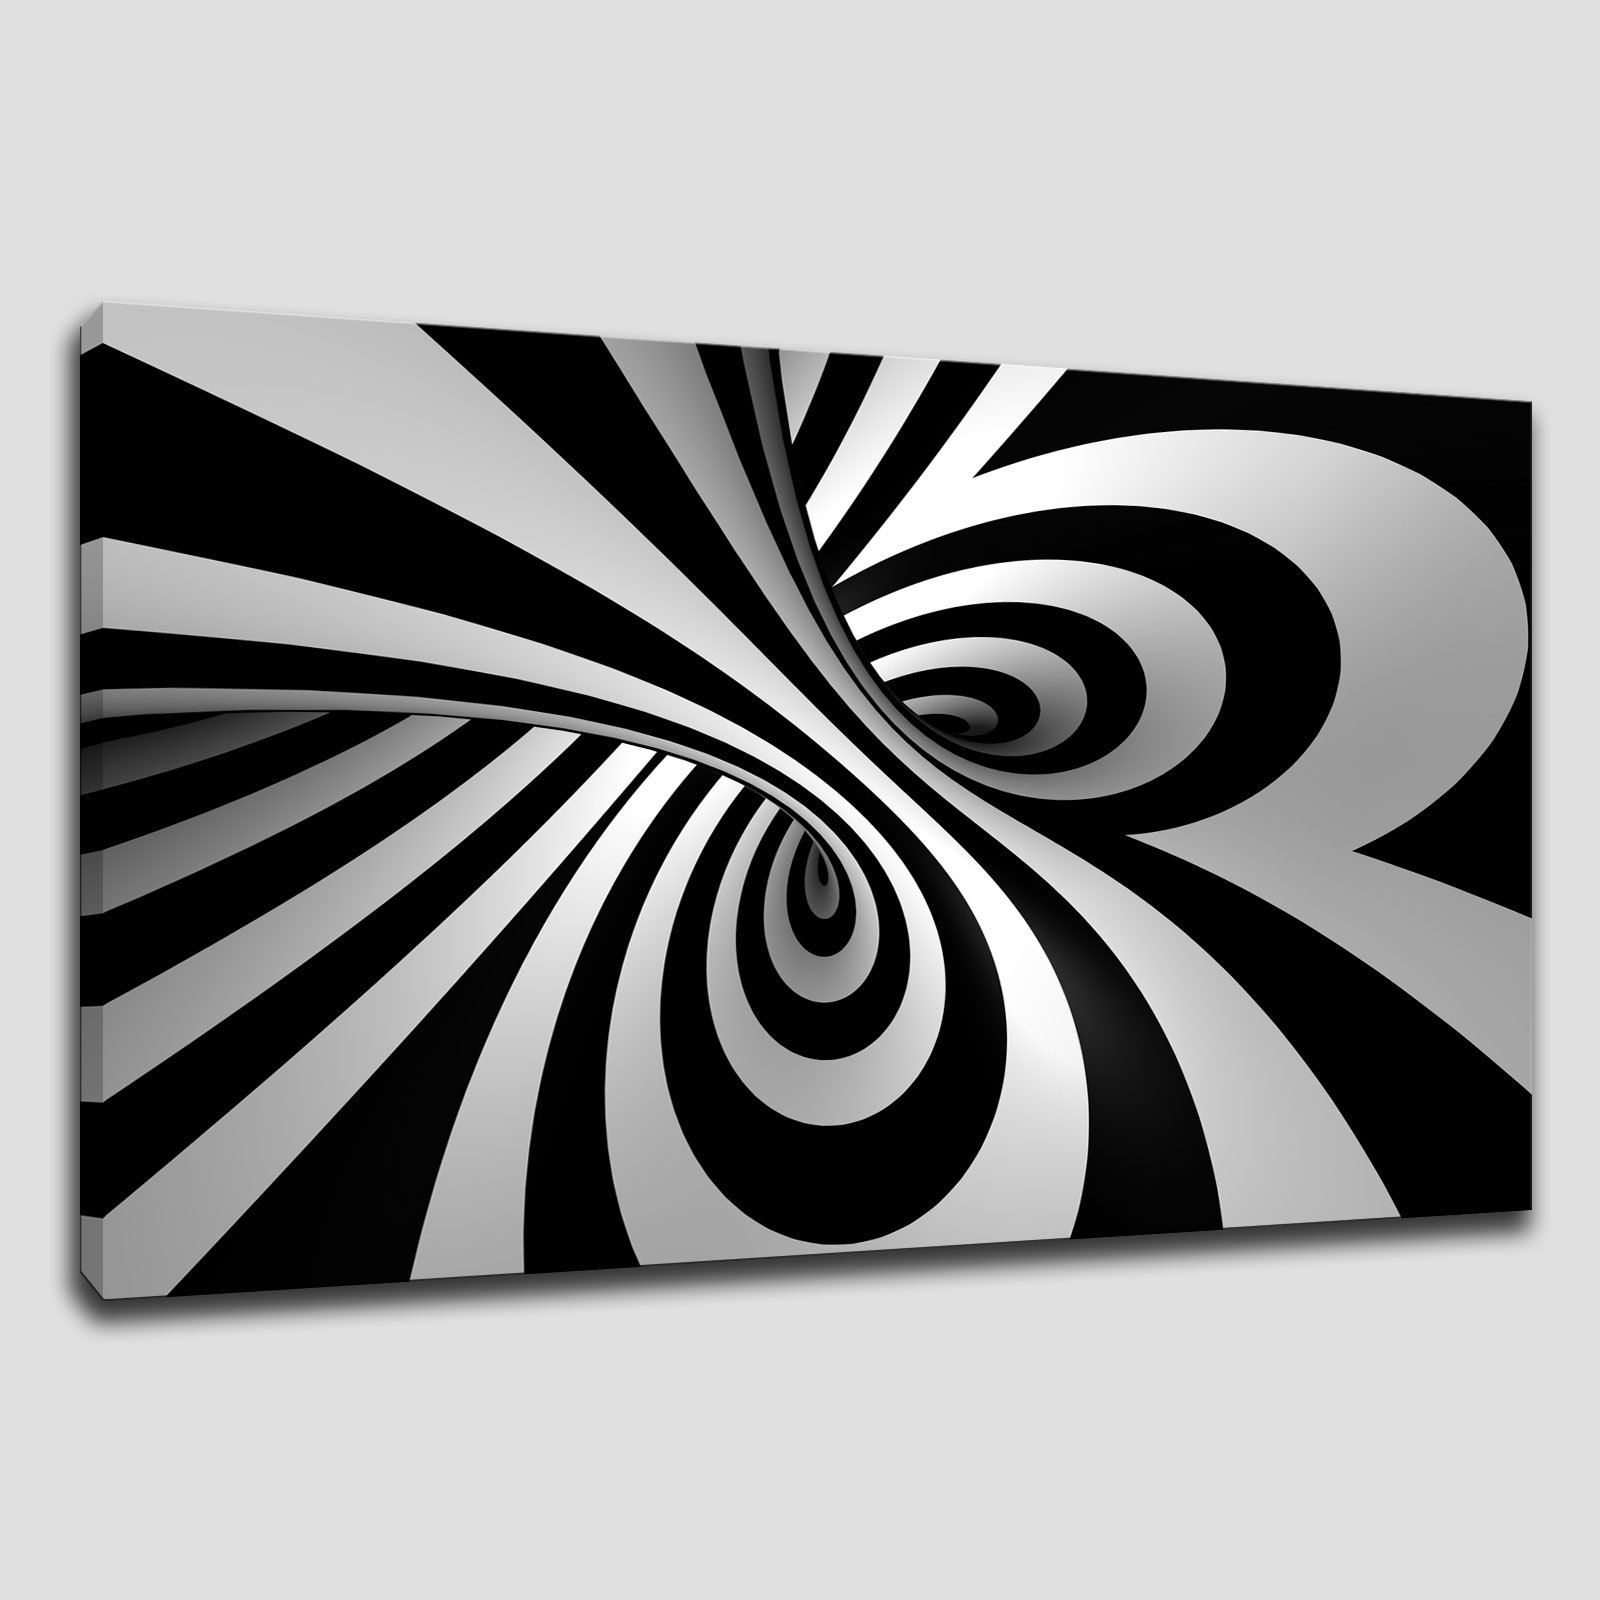 Black And White Large Canvas Wall Art Regarding 2018 Abstract Spiral Large Canvas Print Wall Art (View 12 of 15)